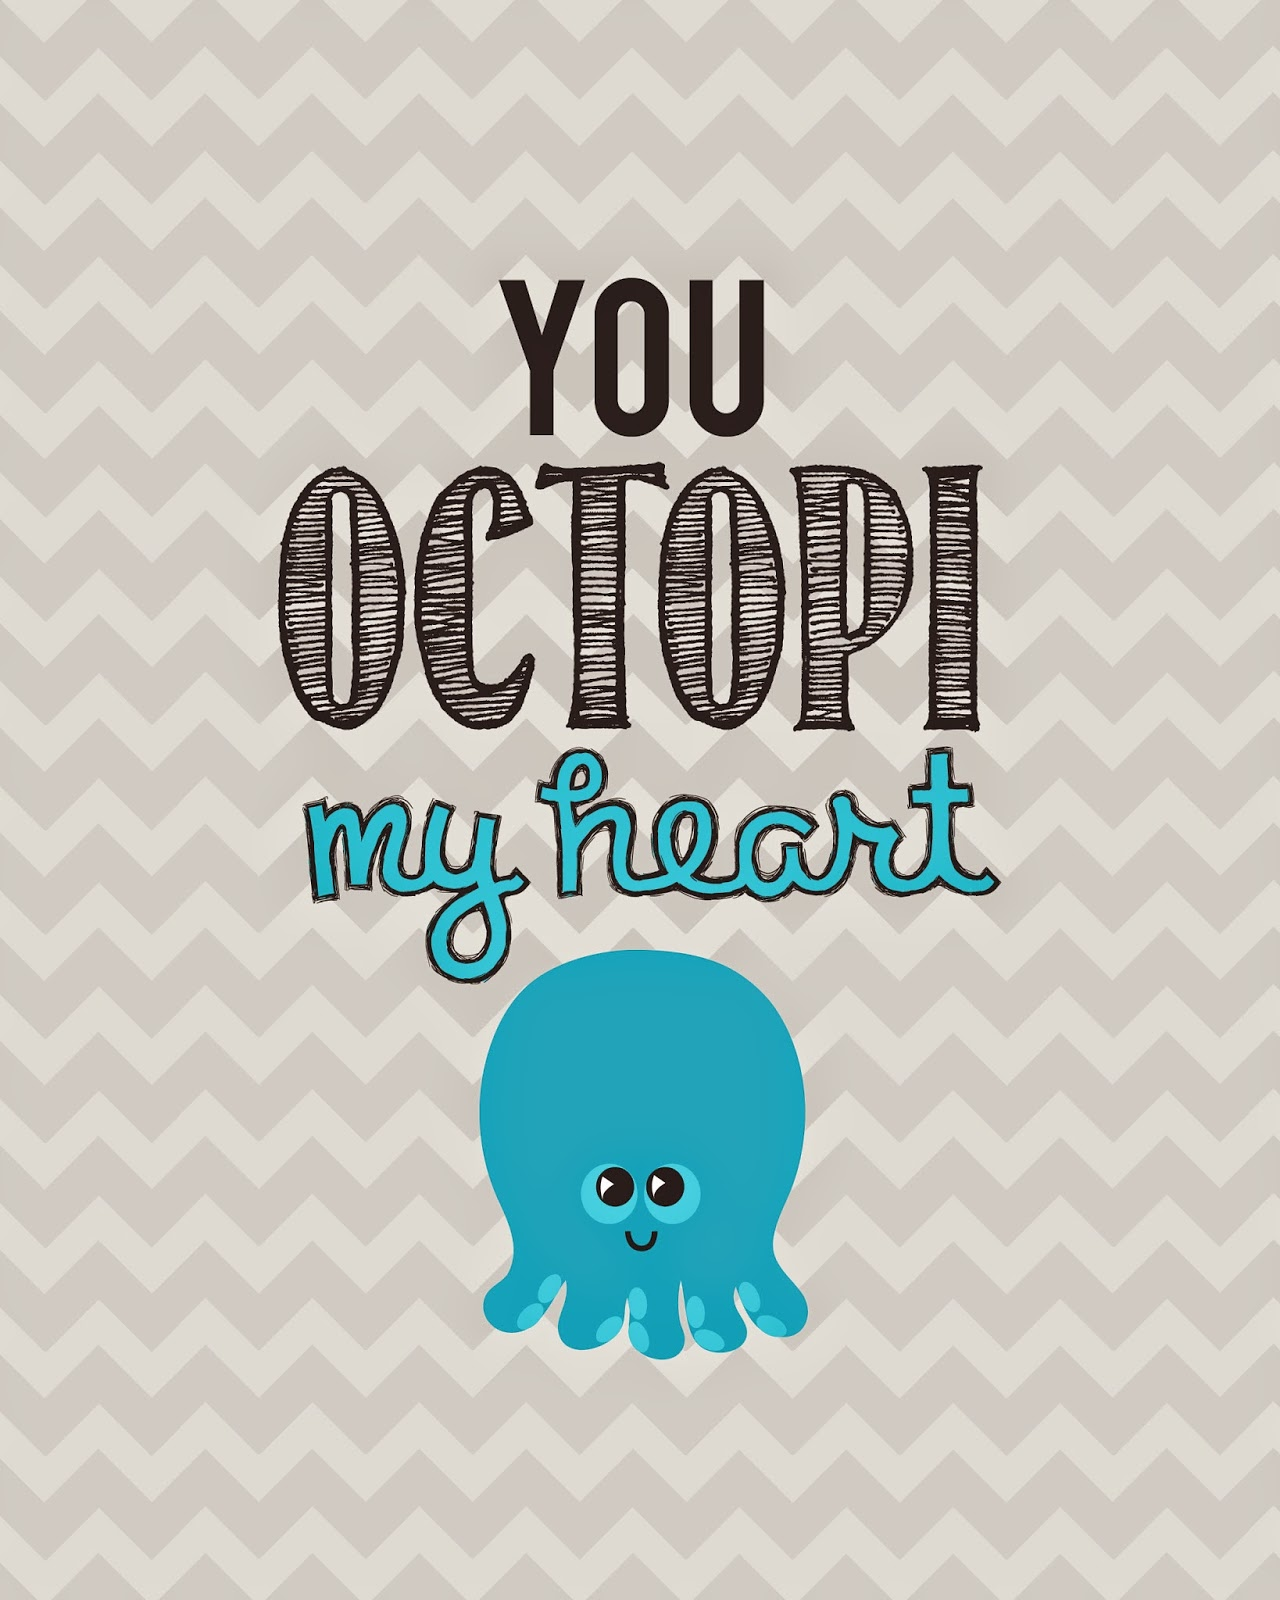 You Octopi My Heart baby printable from Craftastical!